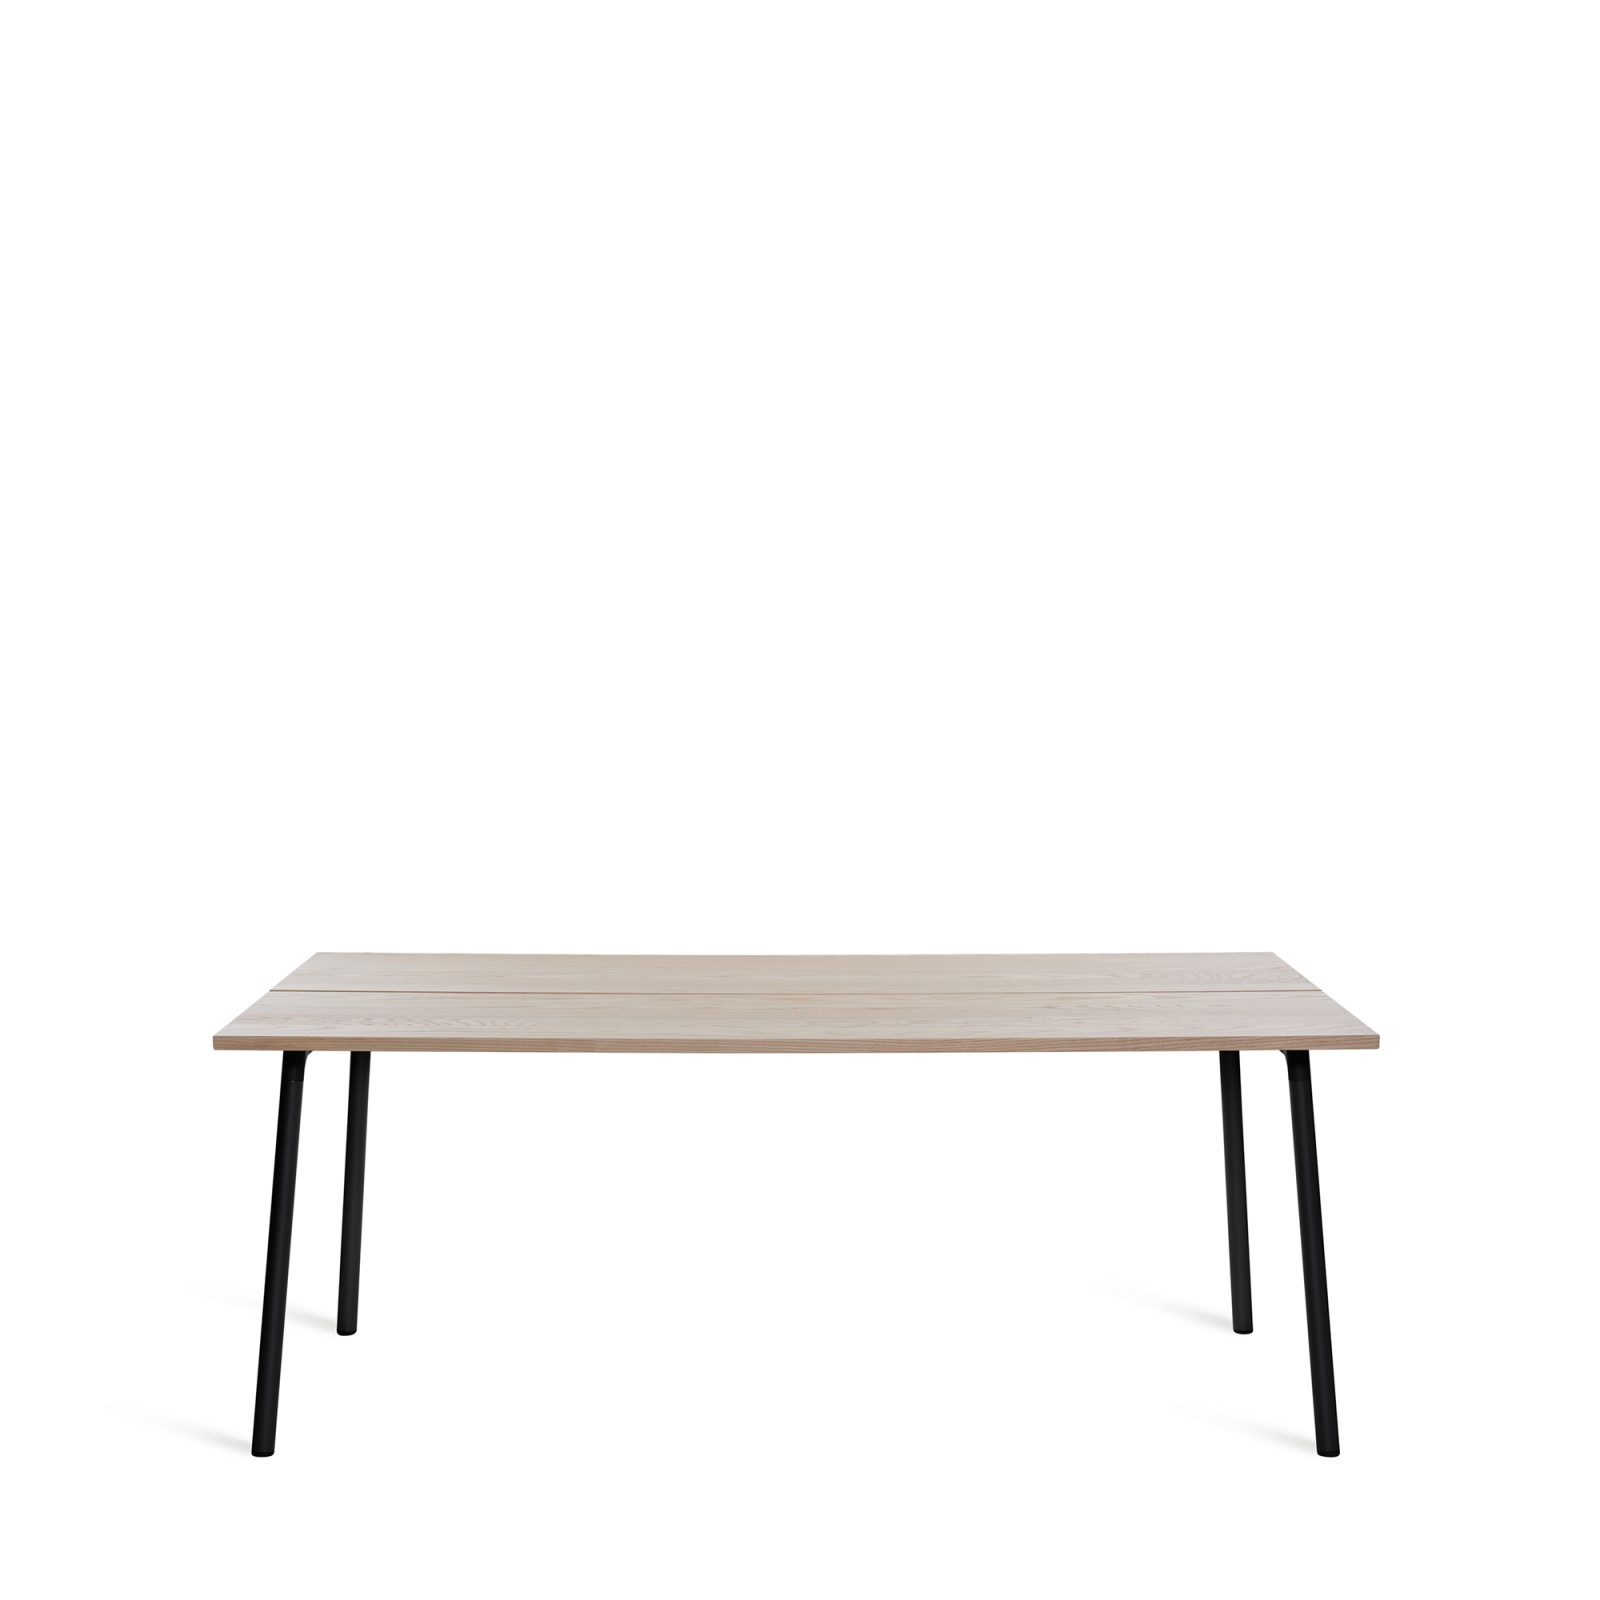 Run Dining Table Rectangular 183cm, Black Powder Coated, Ash